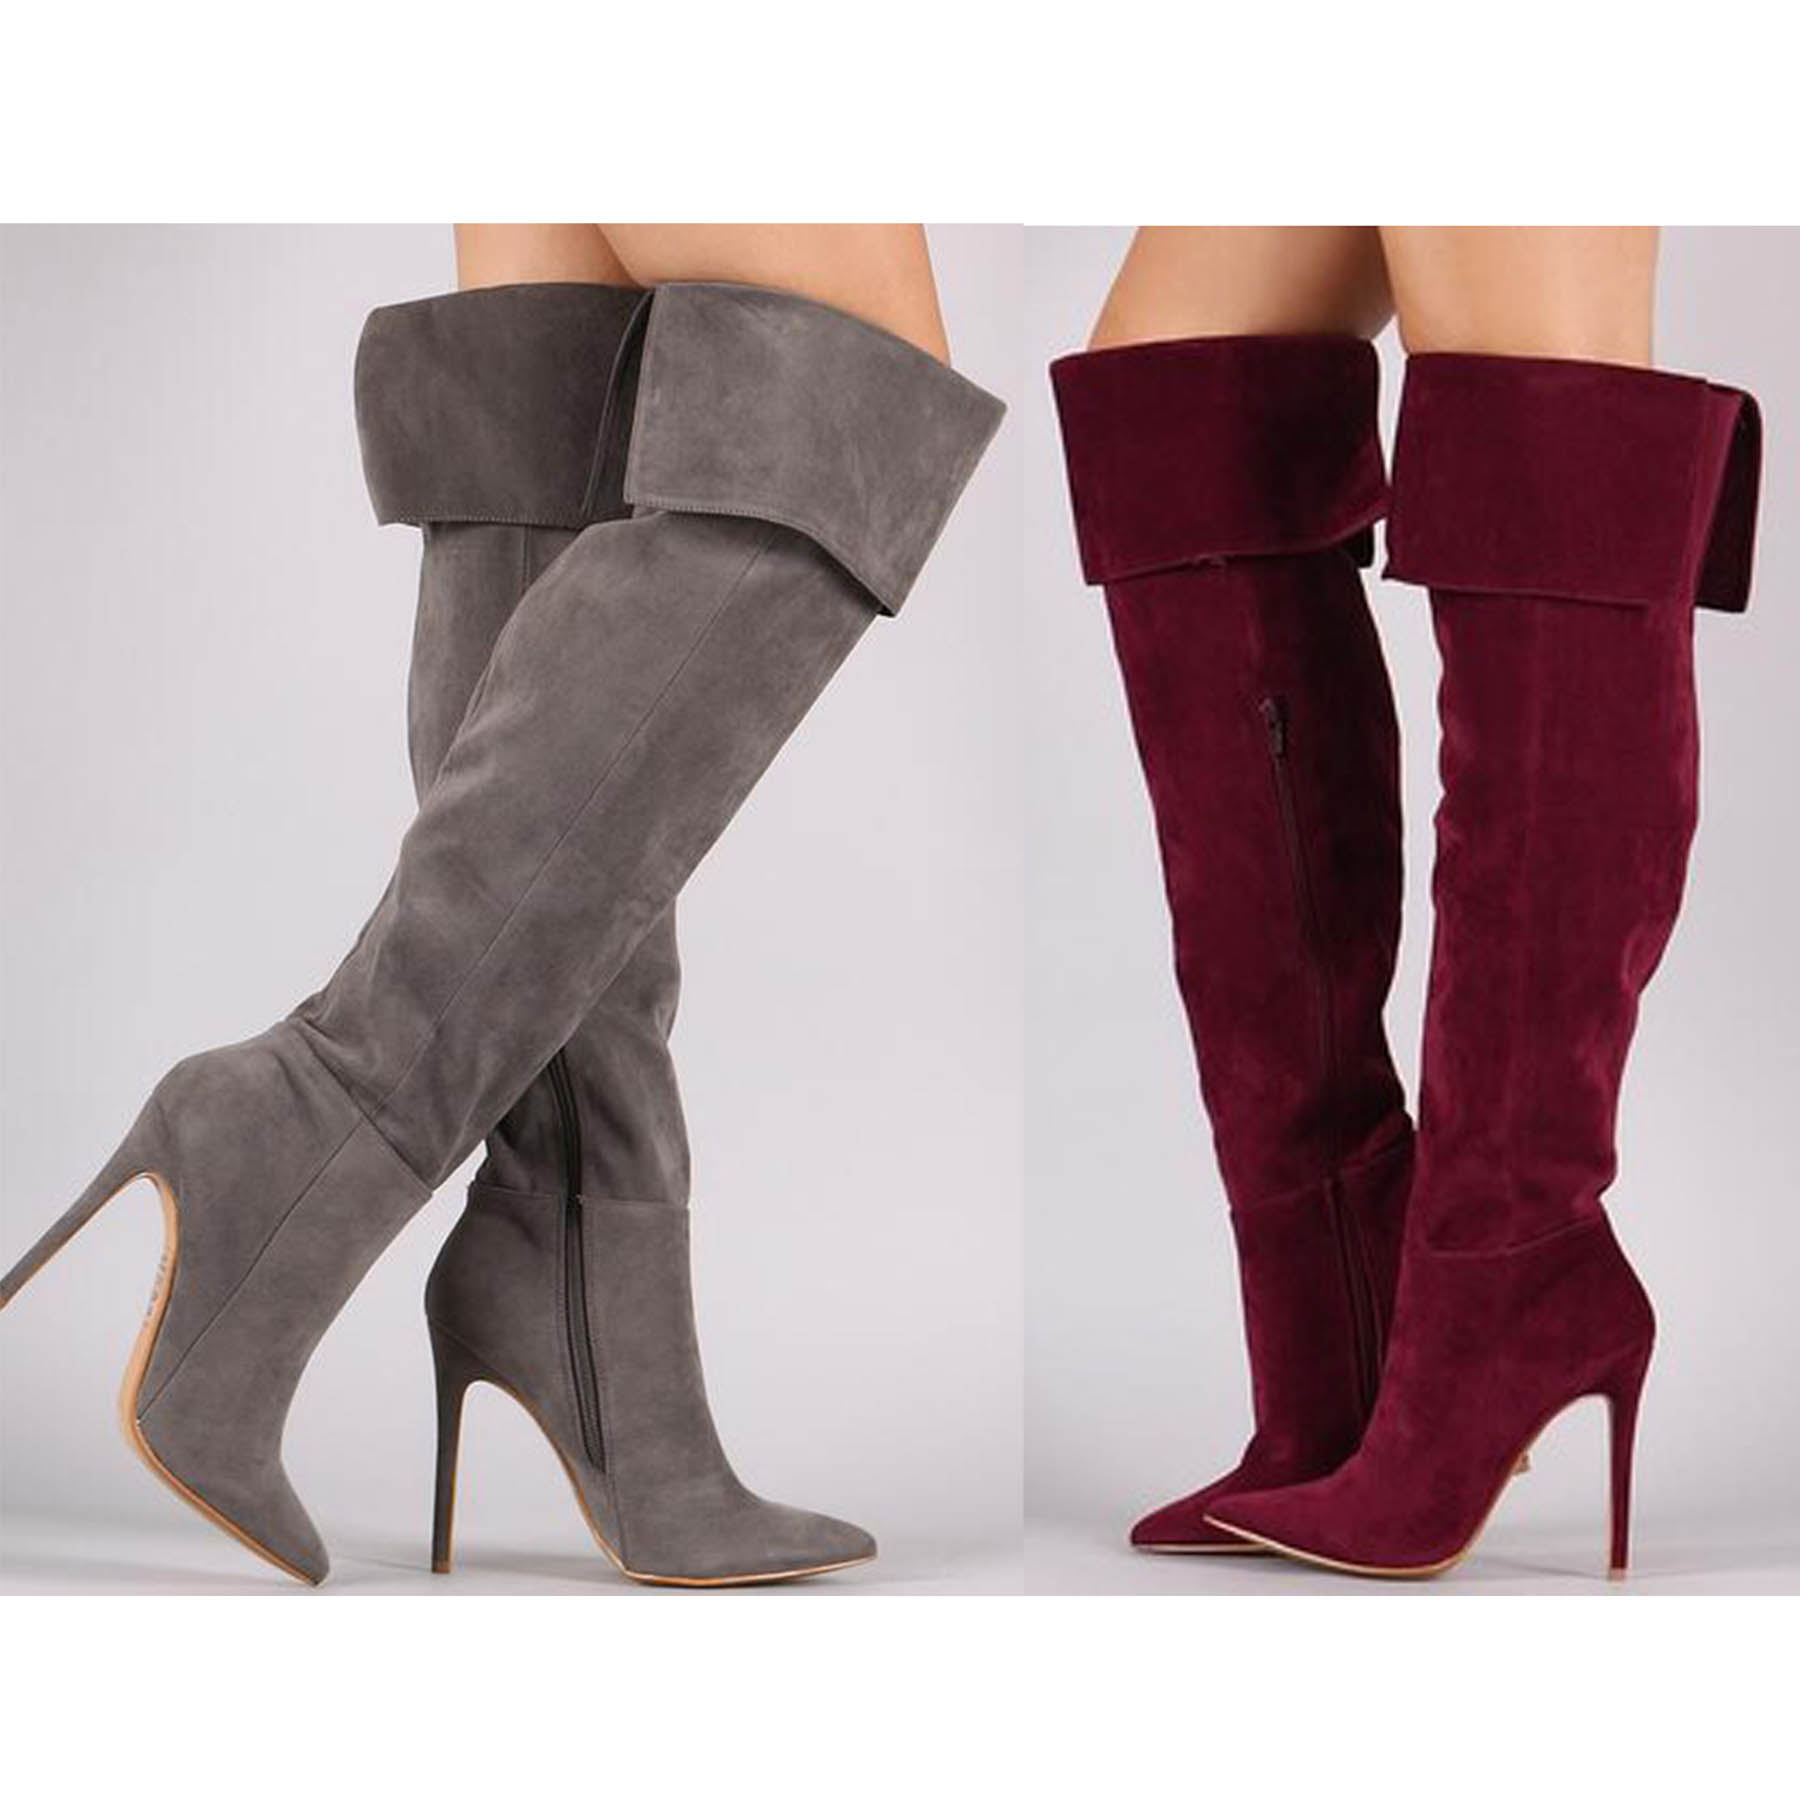 Fashion Sexy Pointed Toe Stiletto velvet ultra High heel over the knee boots Hot selling big size 6-11 women zip boots jialuowei women sexy fashion shoes lace up knee high thin high heel platform thigh high boots pointed stiletto zip leather boots